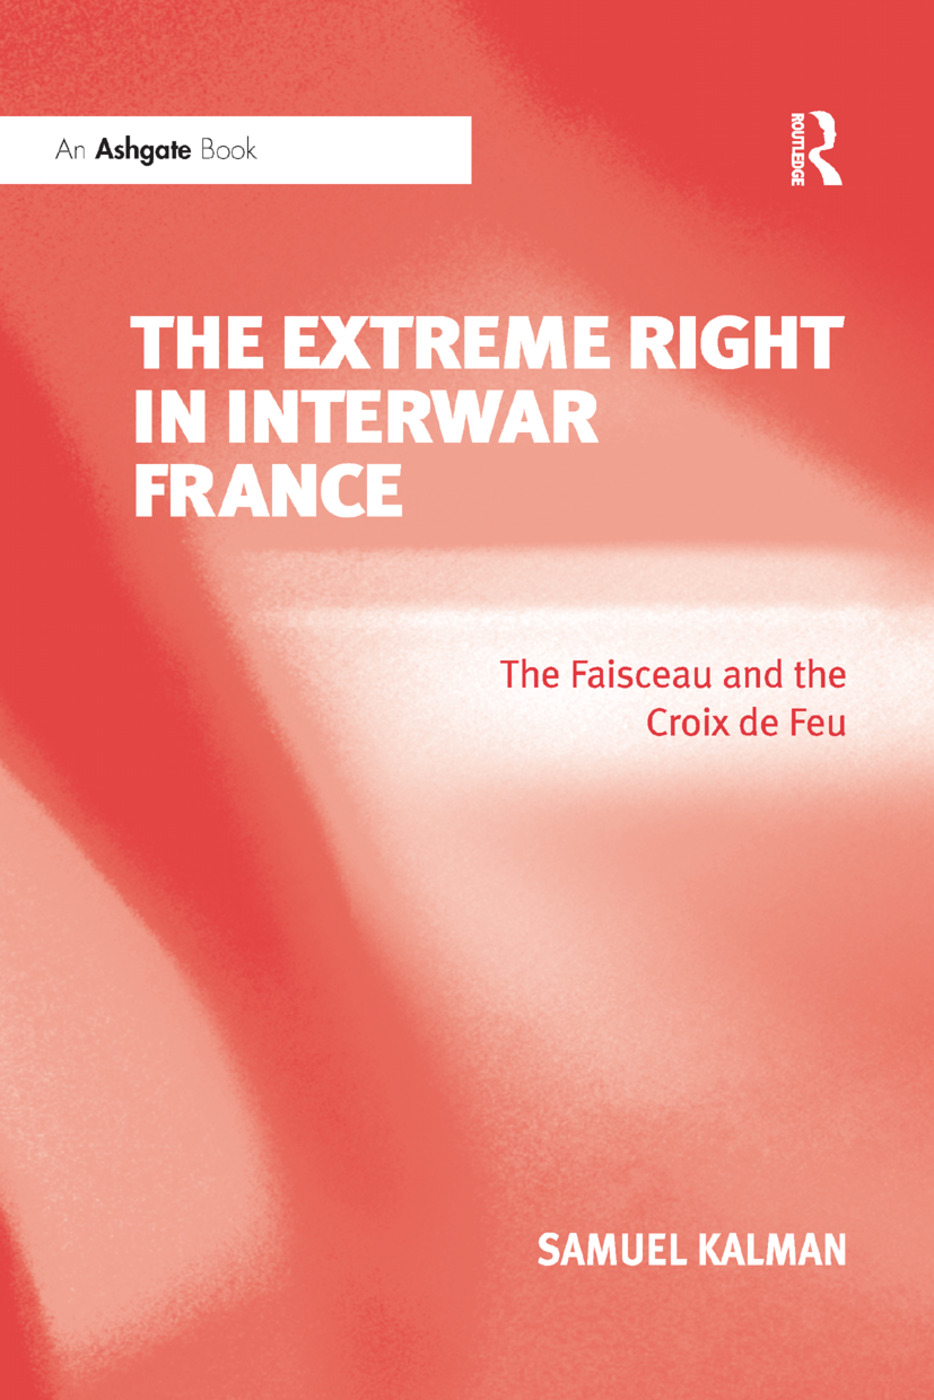 The Extreme Right in Interwar France: The Faisceau and the Croix de Feu book cover